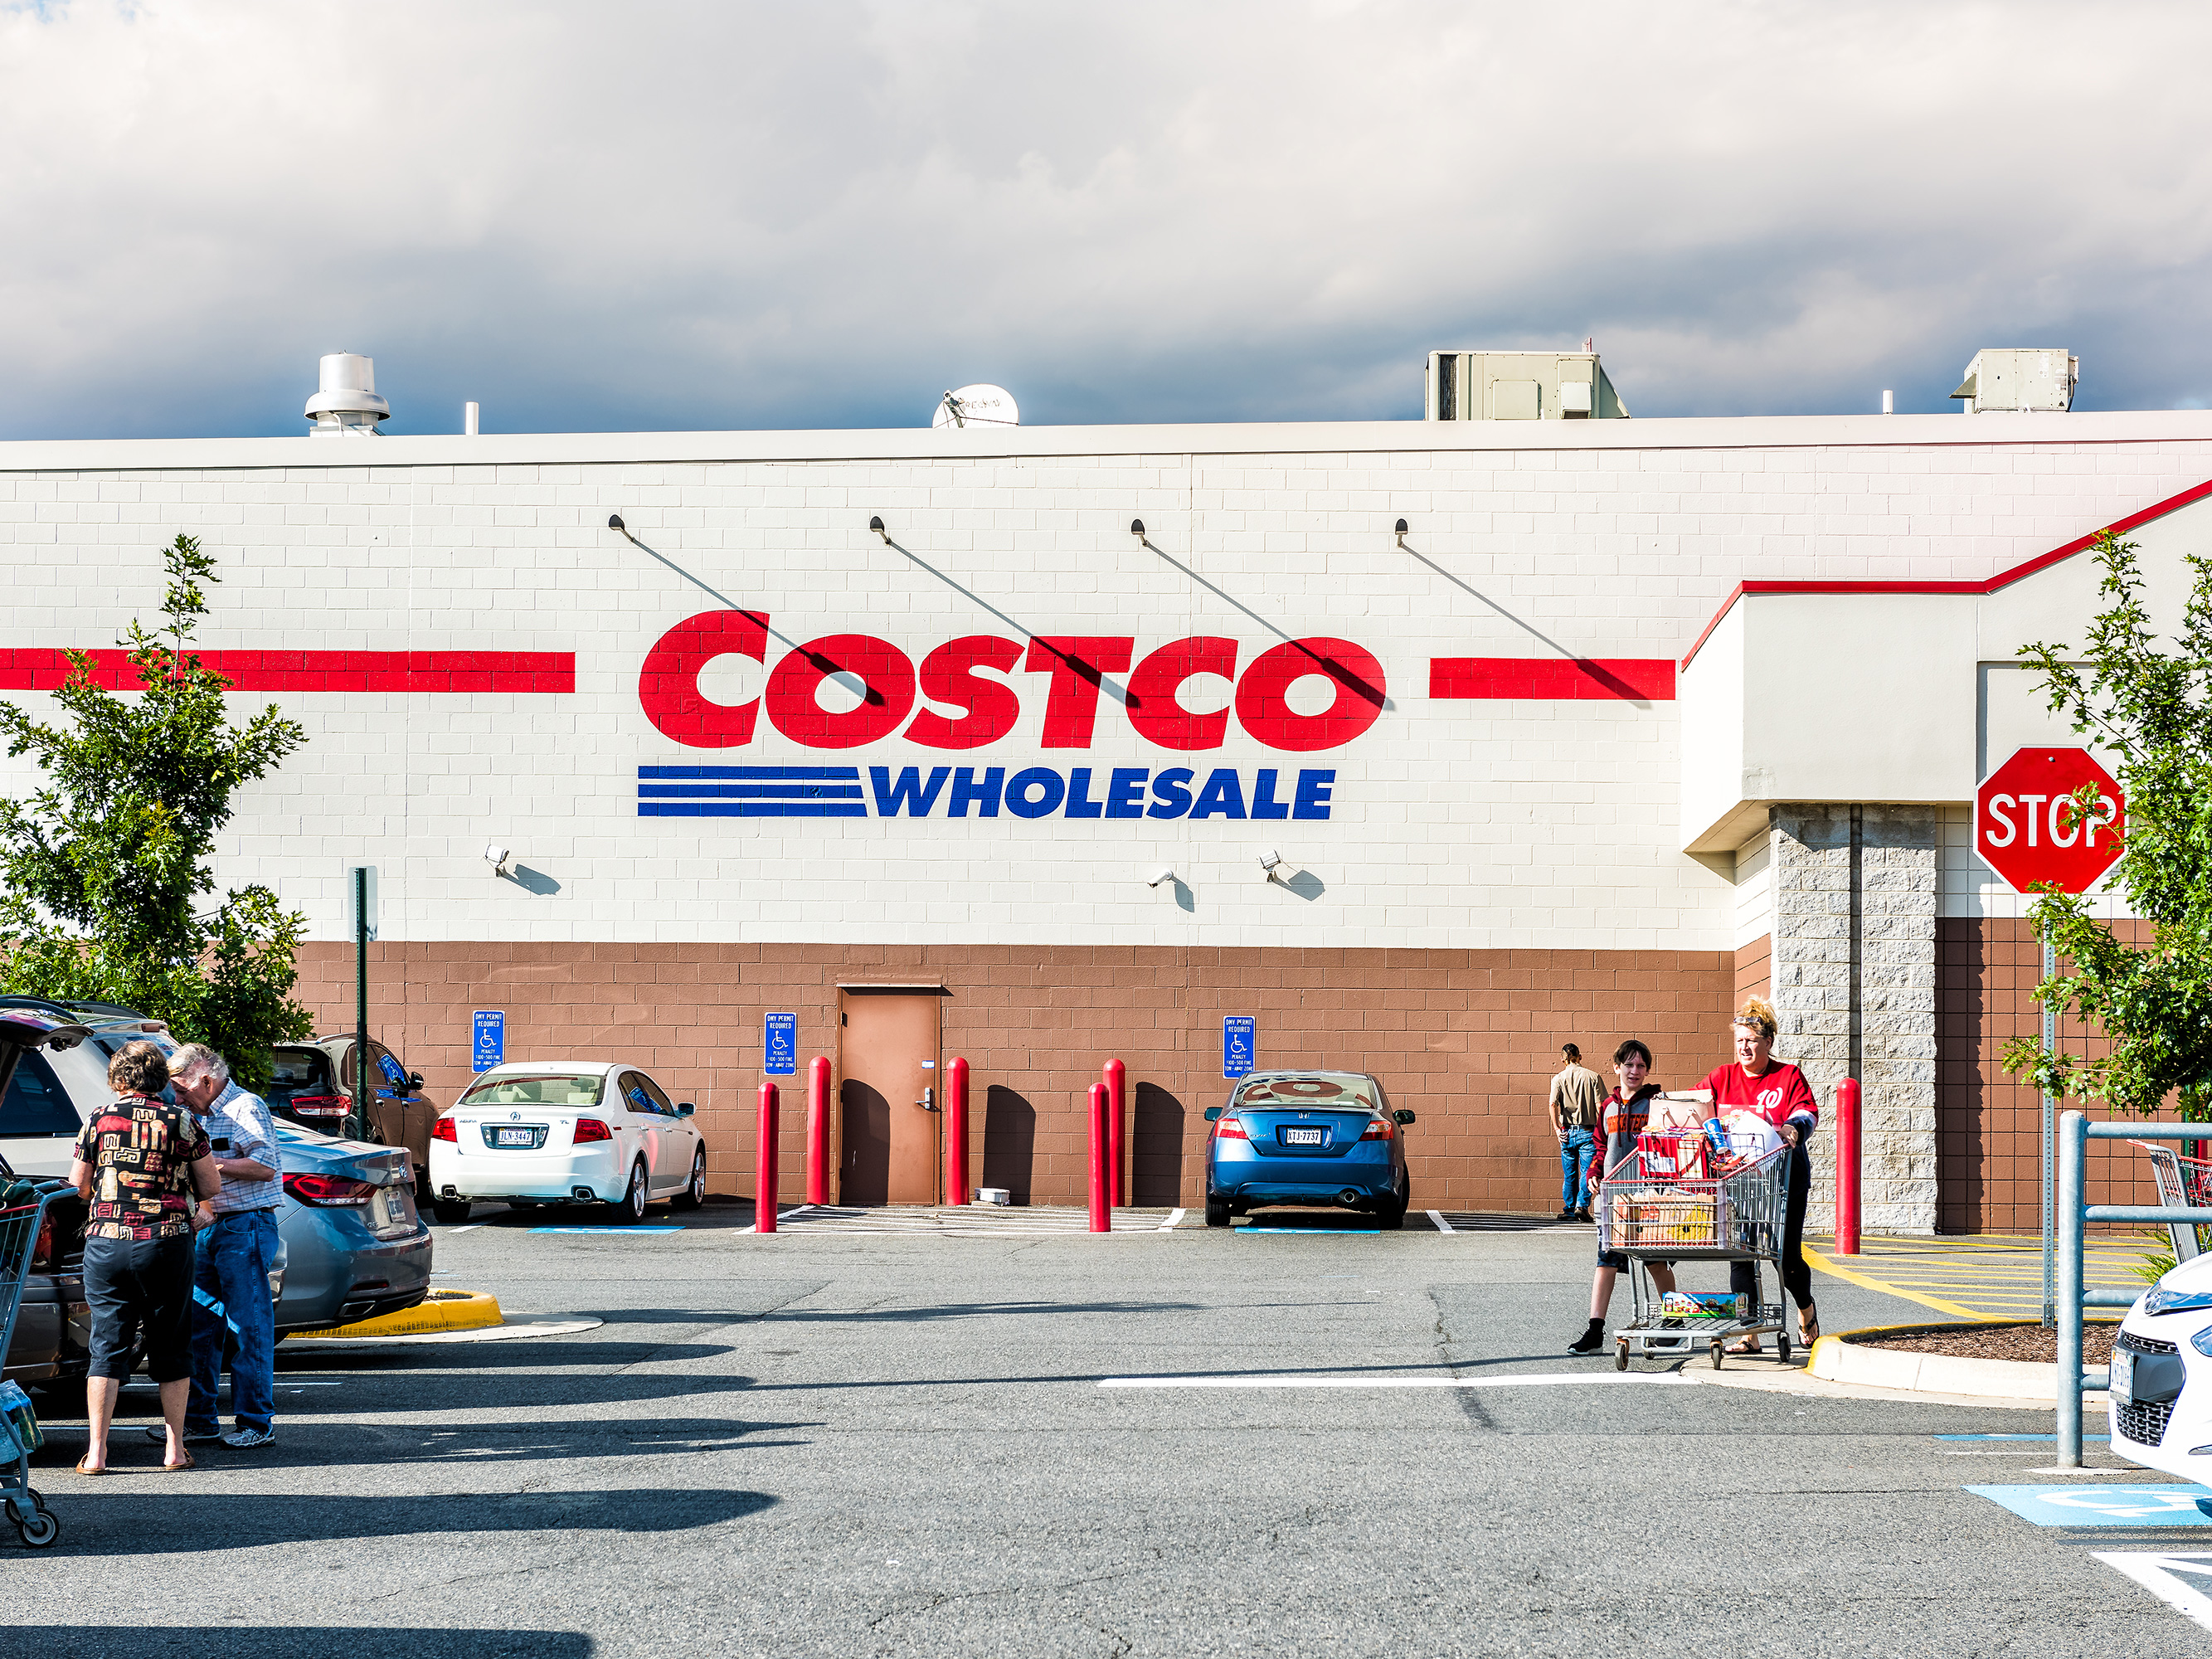 You Can Buy These 5 Things Without a Costco Membership